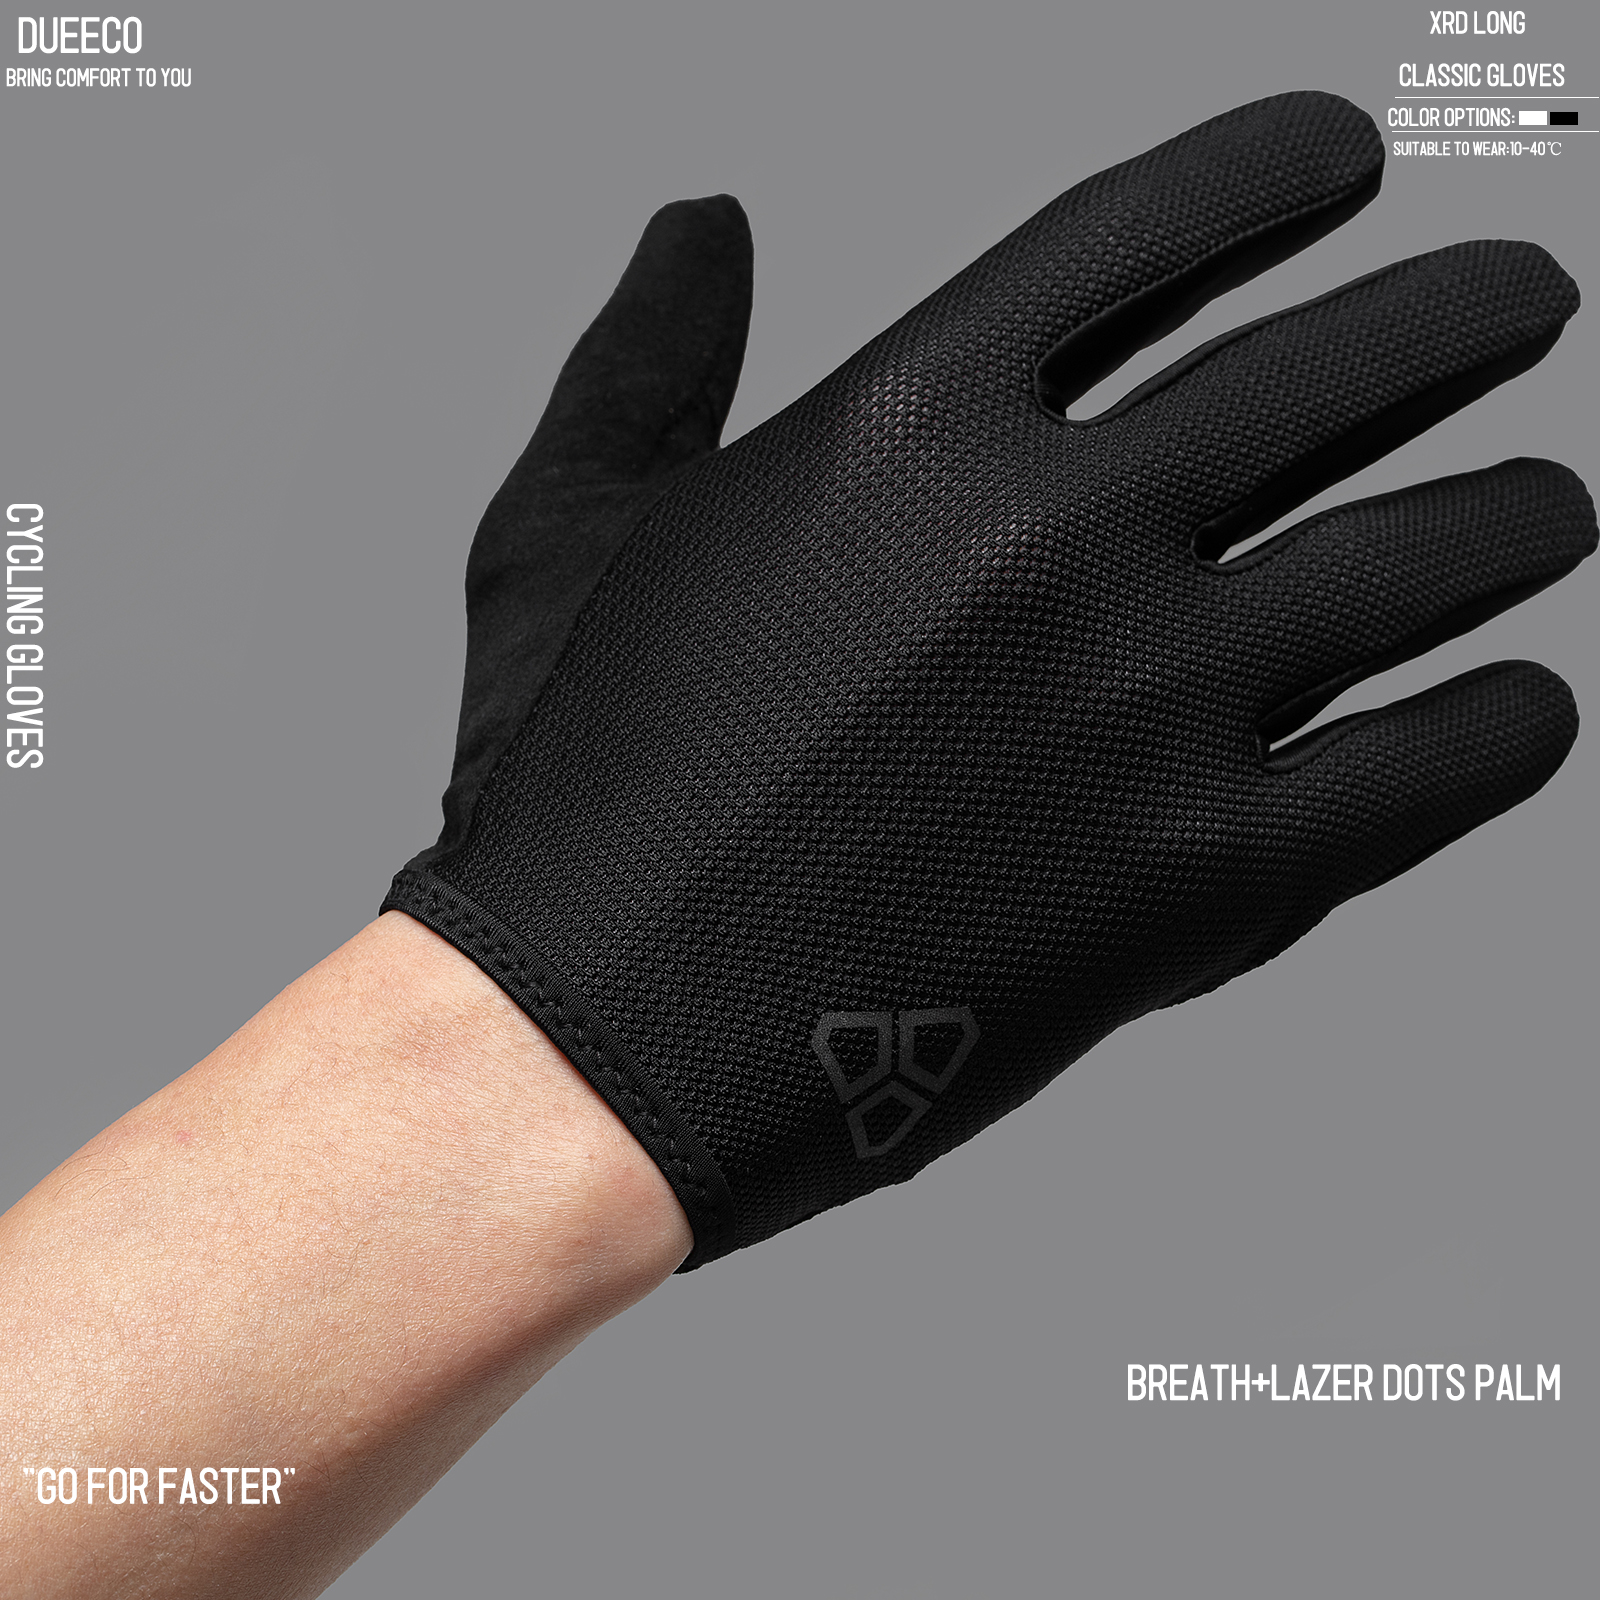 Full Finger Bicycle Gloves MTB MX Gloves XRD Pad Shock Absorbing Non-Slip Touch Screen Design For Men And Women